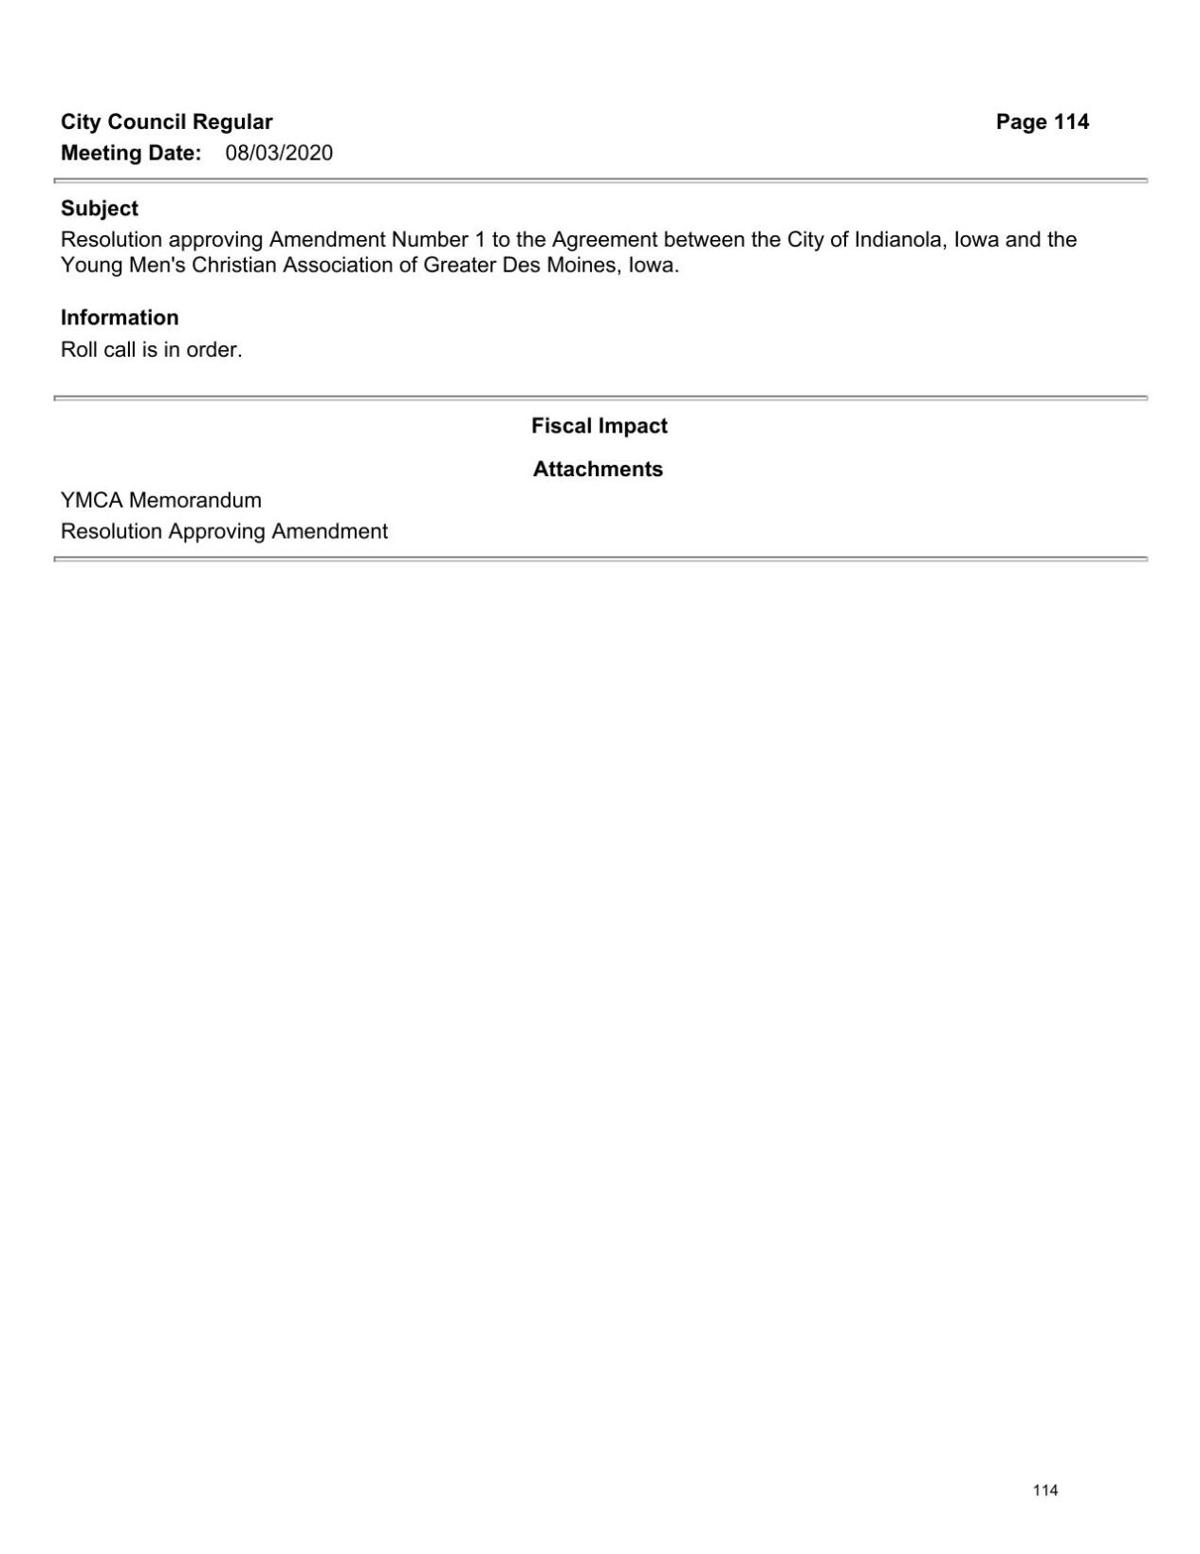 Proposed YMCA agreement